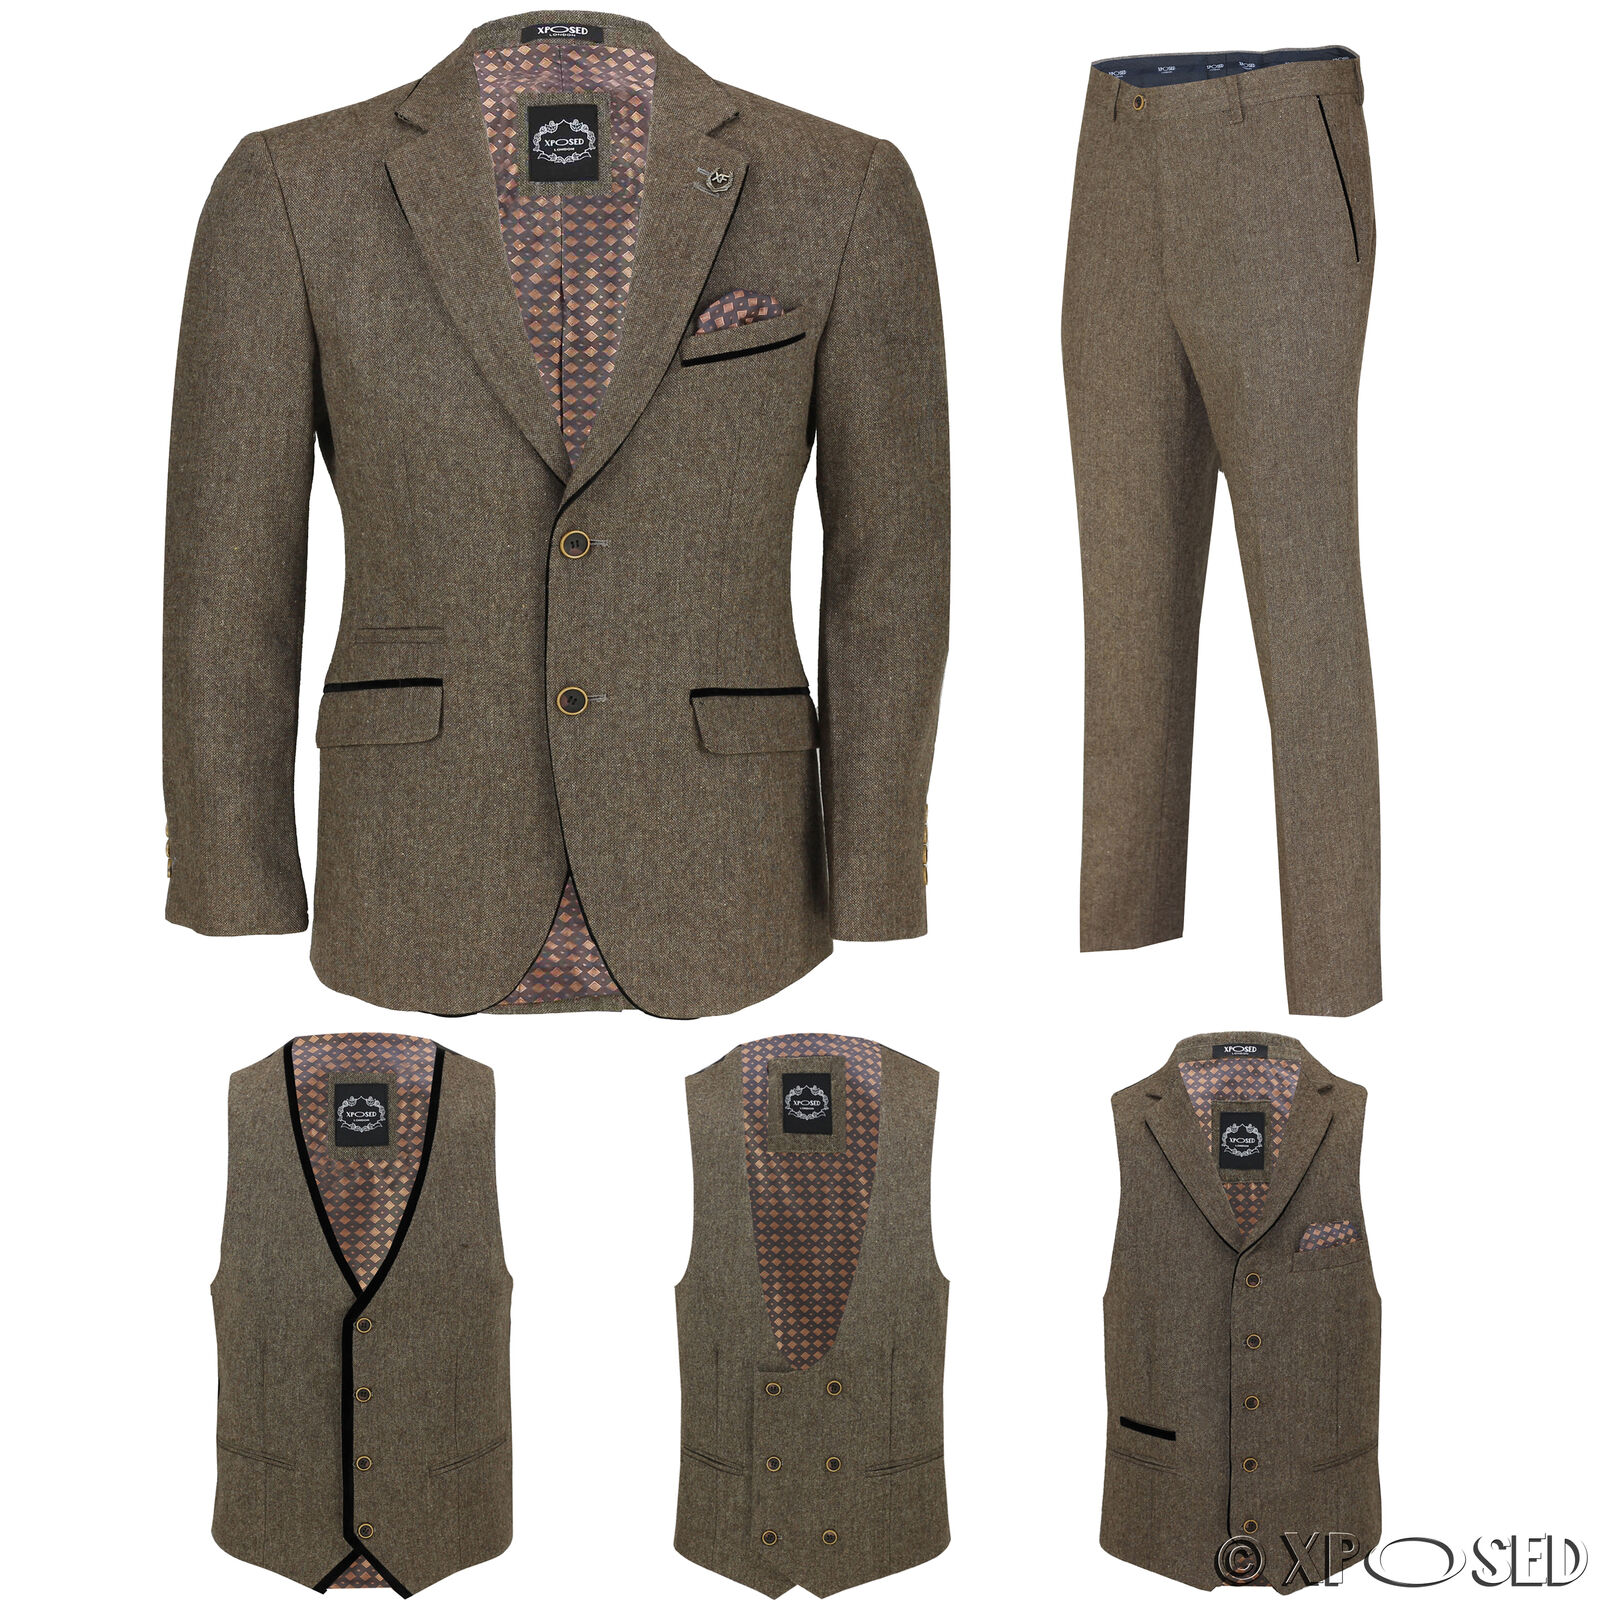 Herren Tan Wool Mix Tweed 3 Piece Suit Sold Separately Blazer Trouser Waistcoat